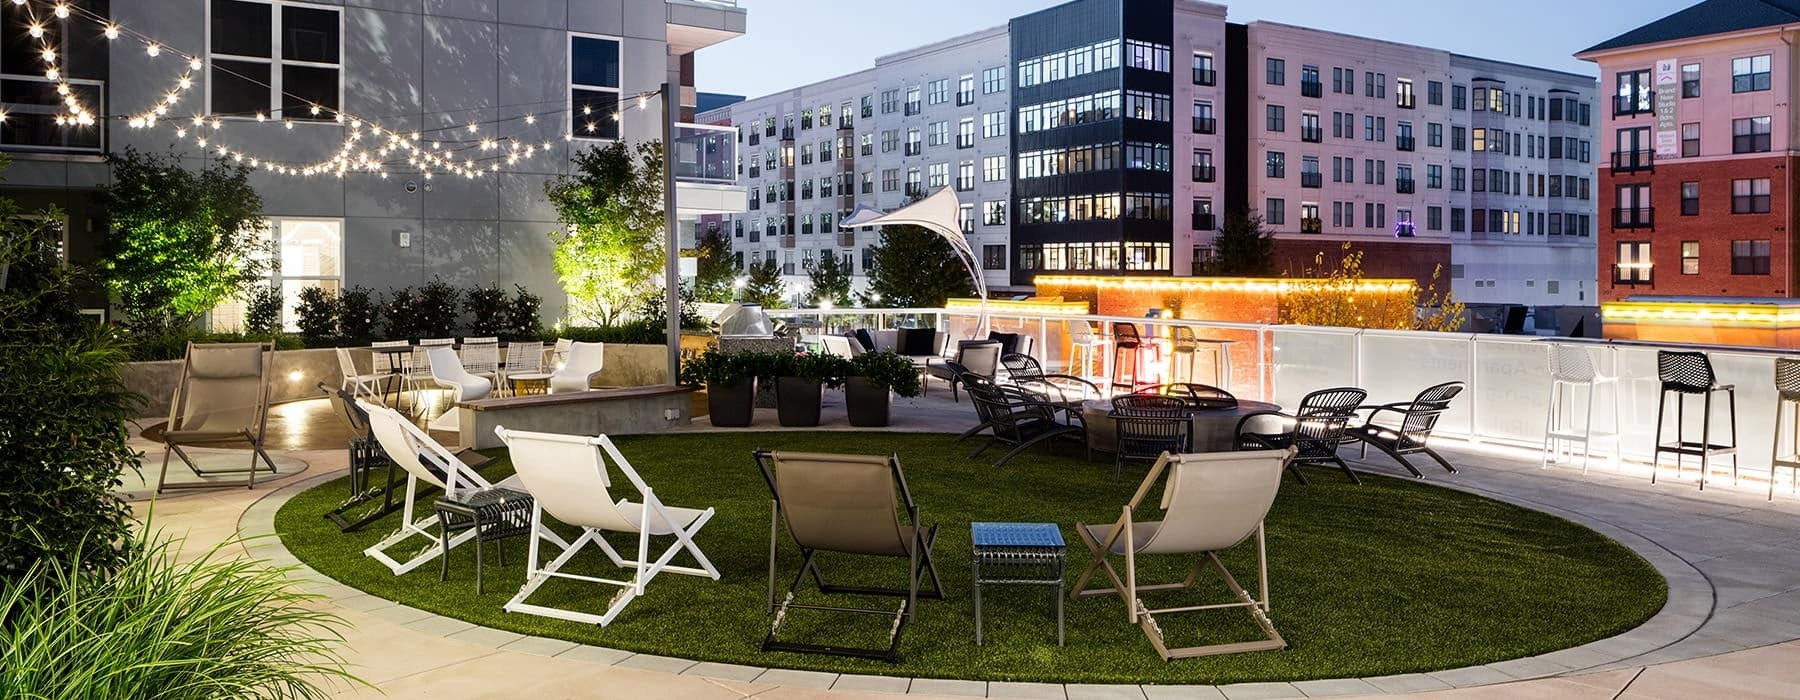 outdoor seating in resident outdoor courtyard area at dusk